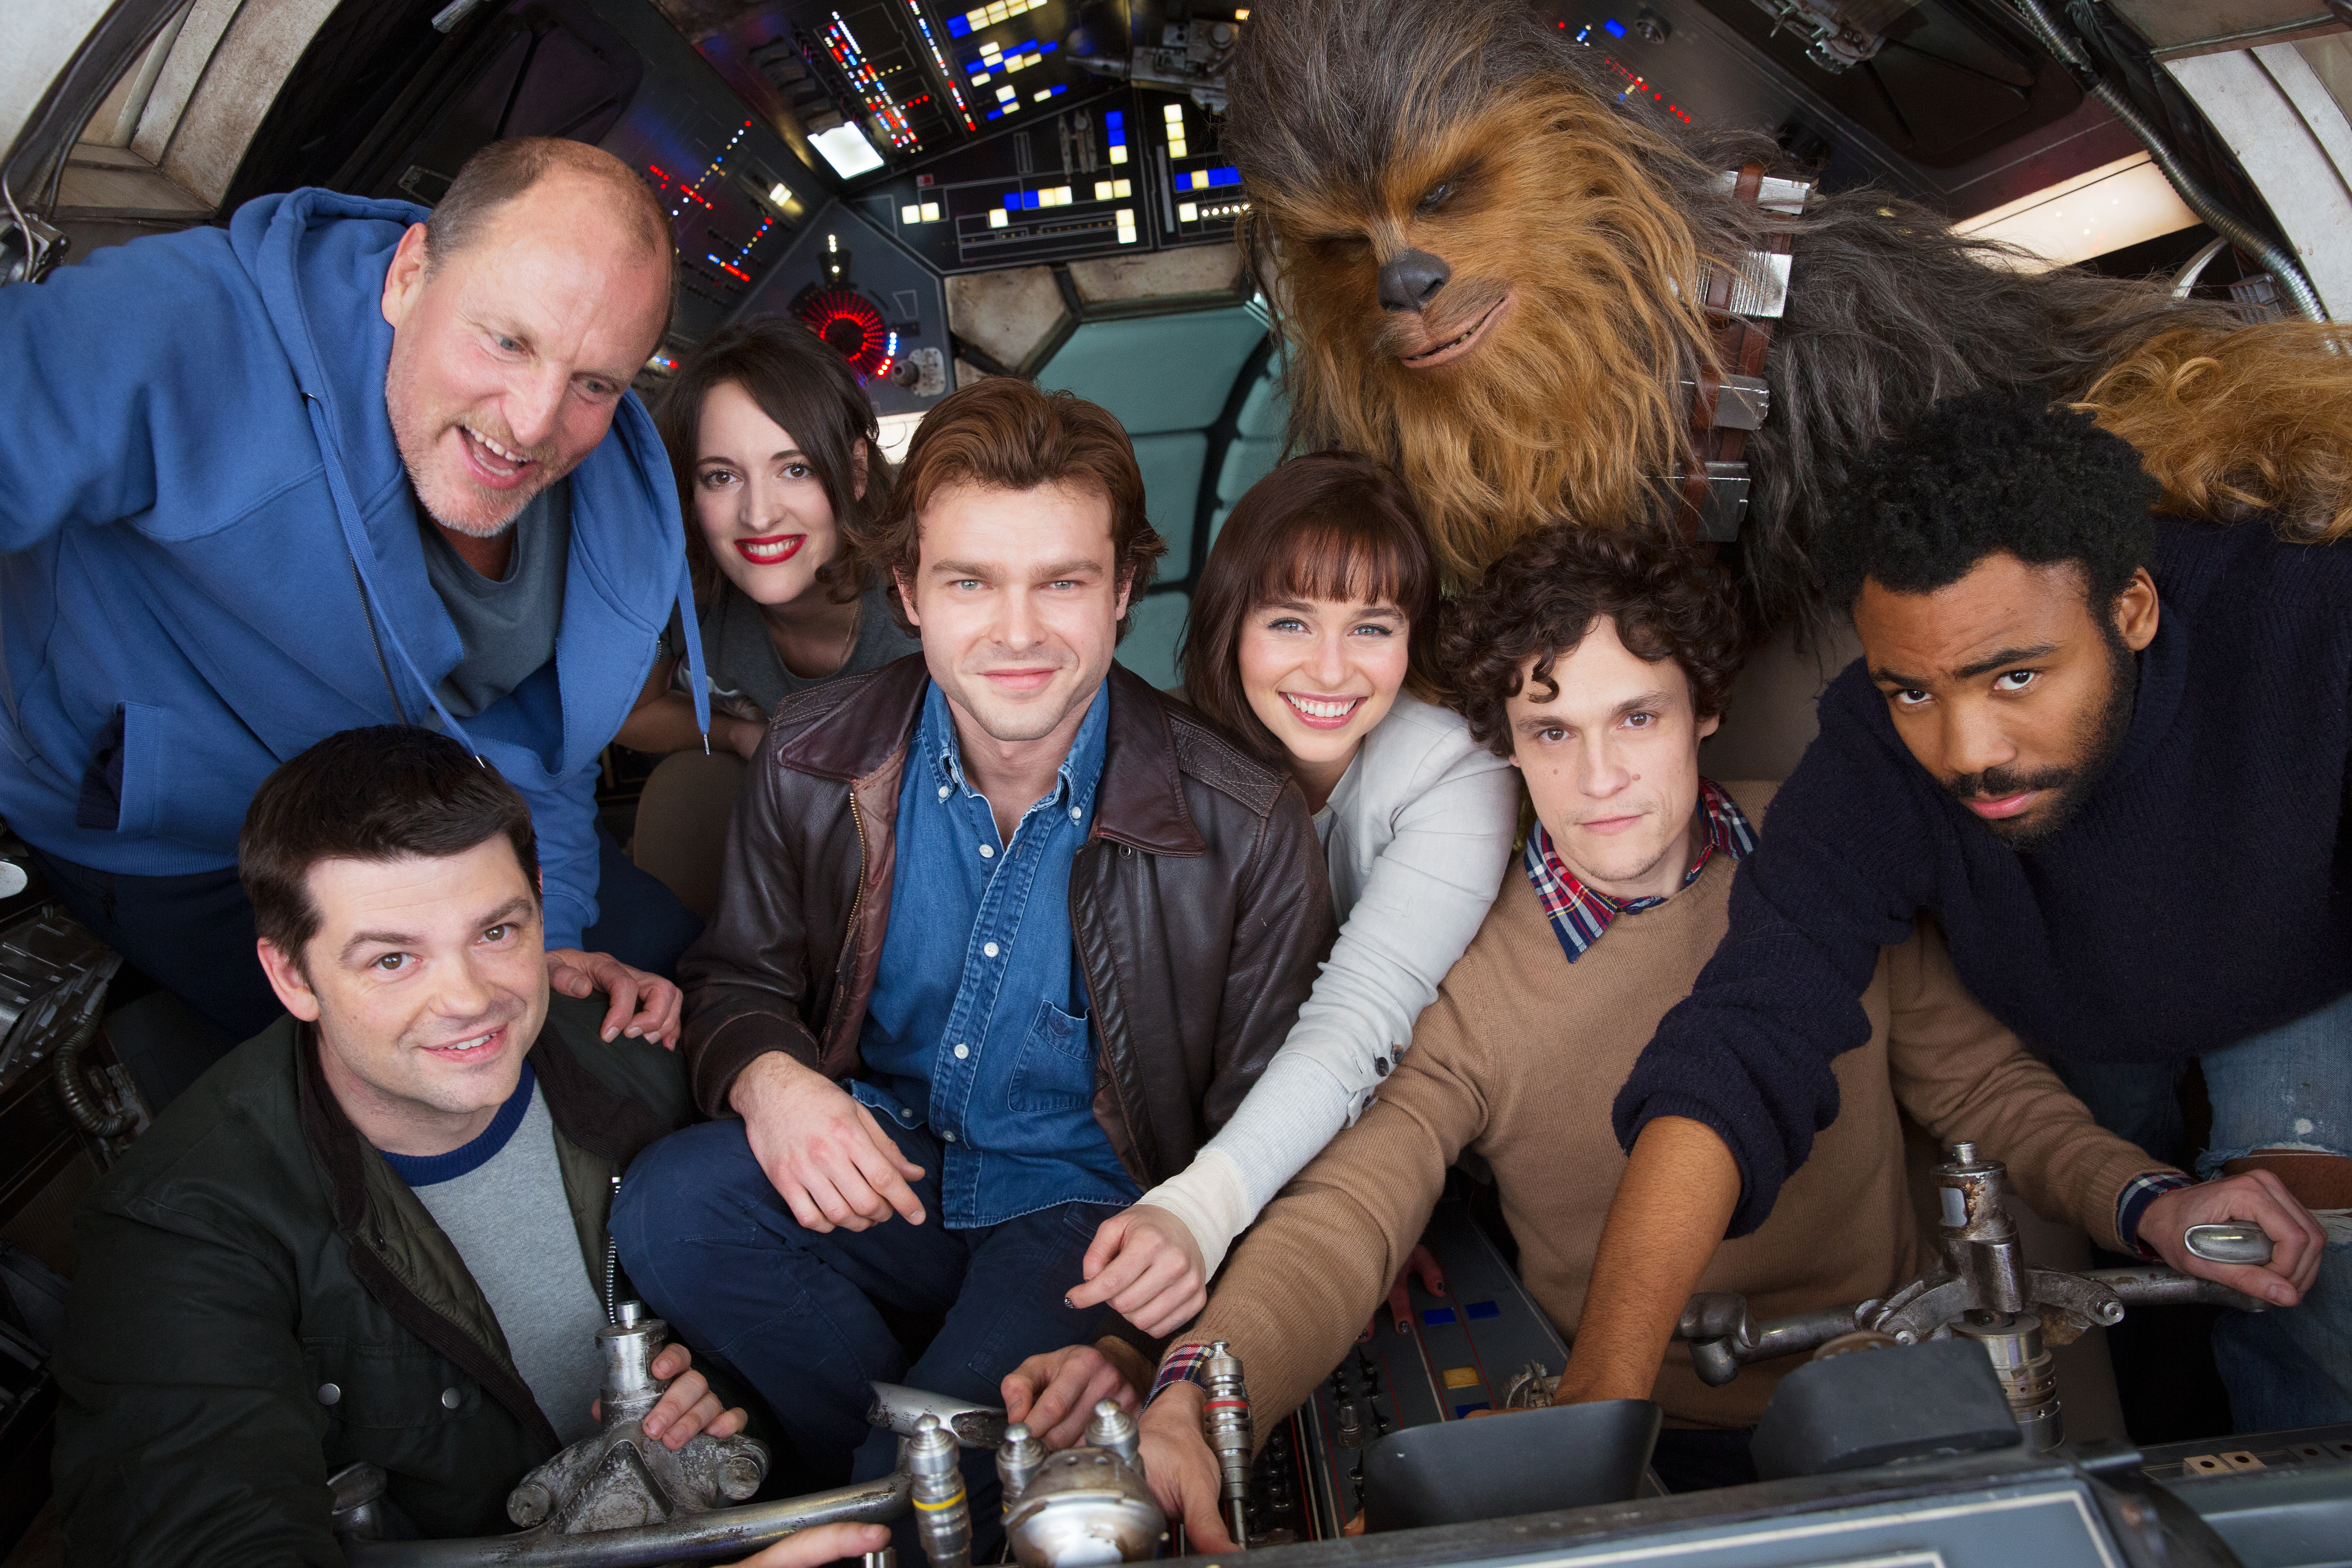 New Han Solo 'Star Wars' Story Begins Production